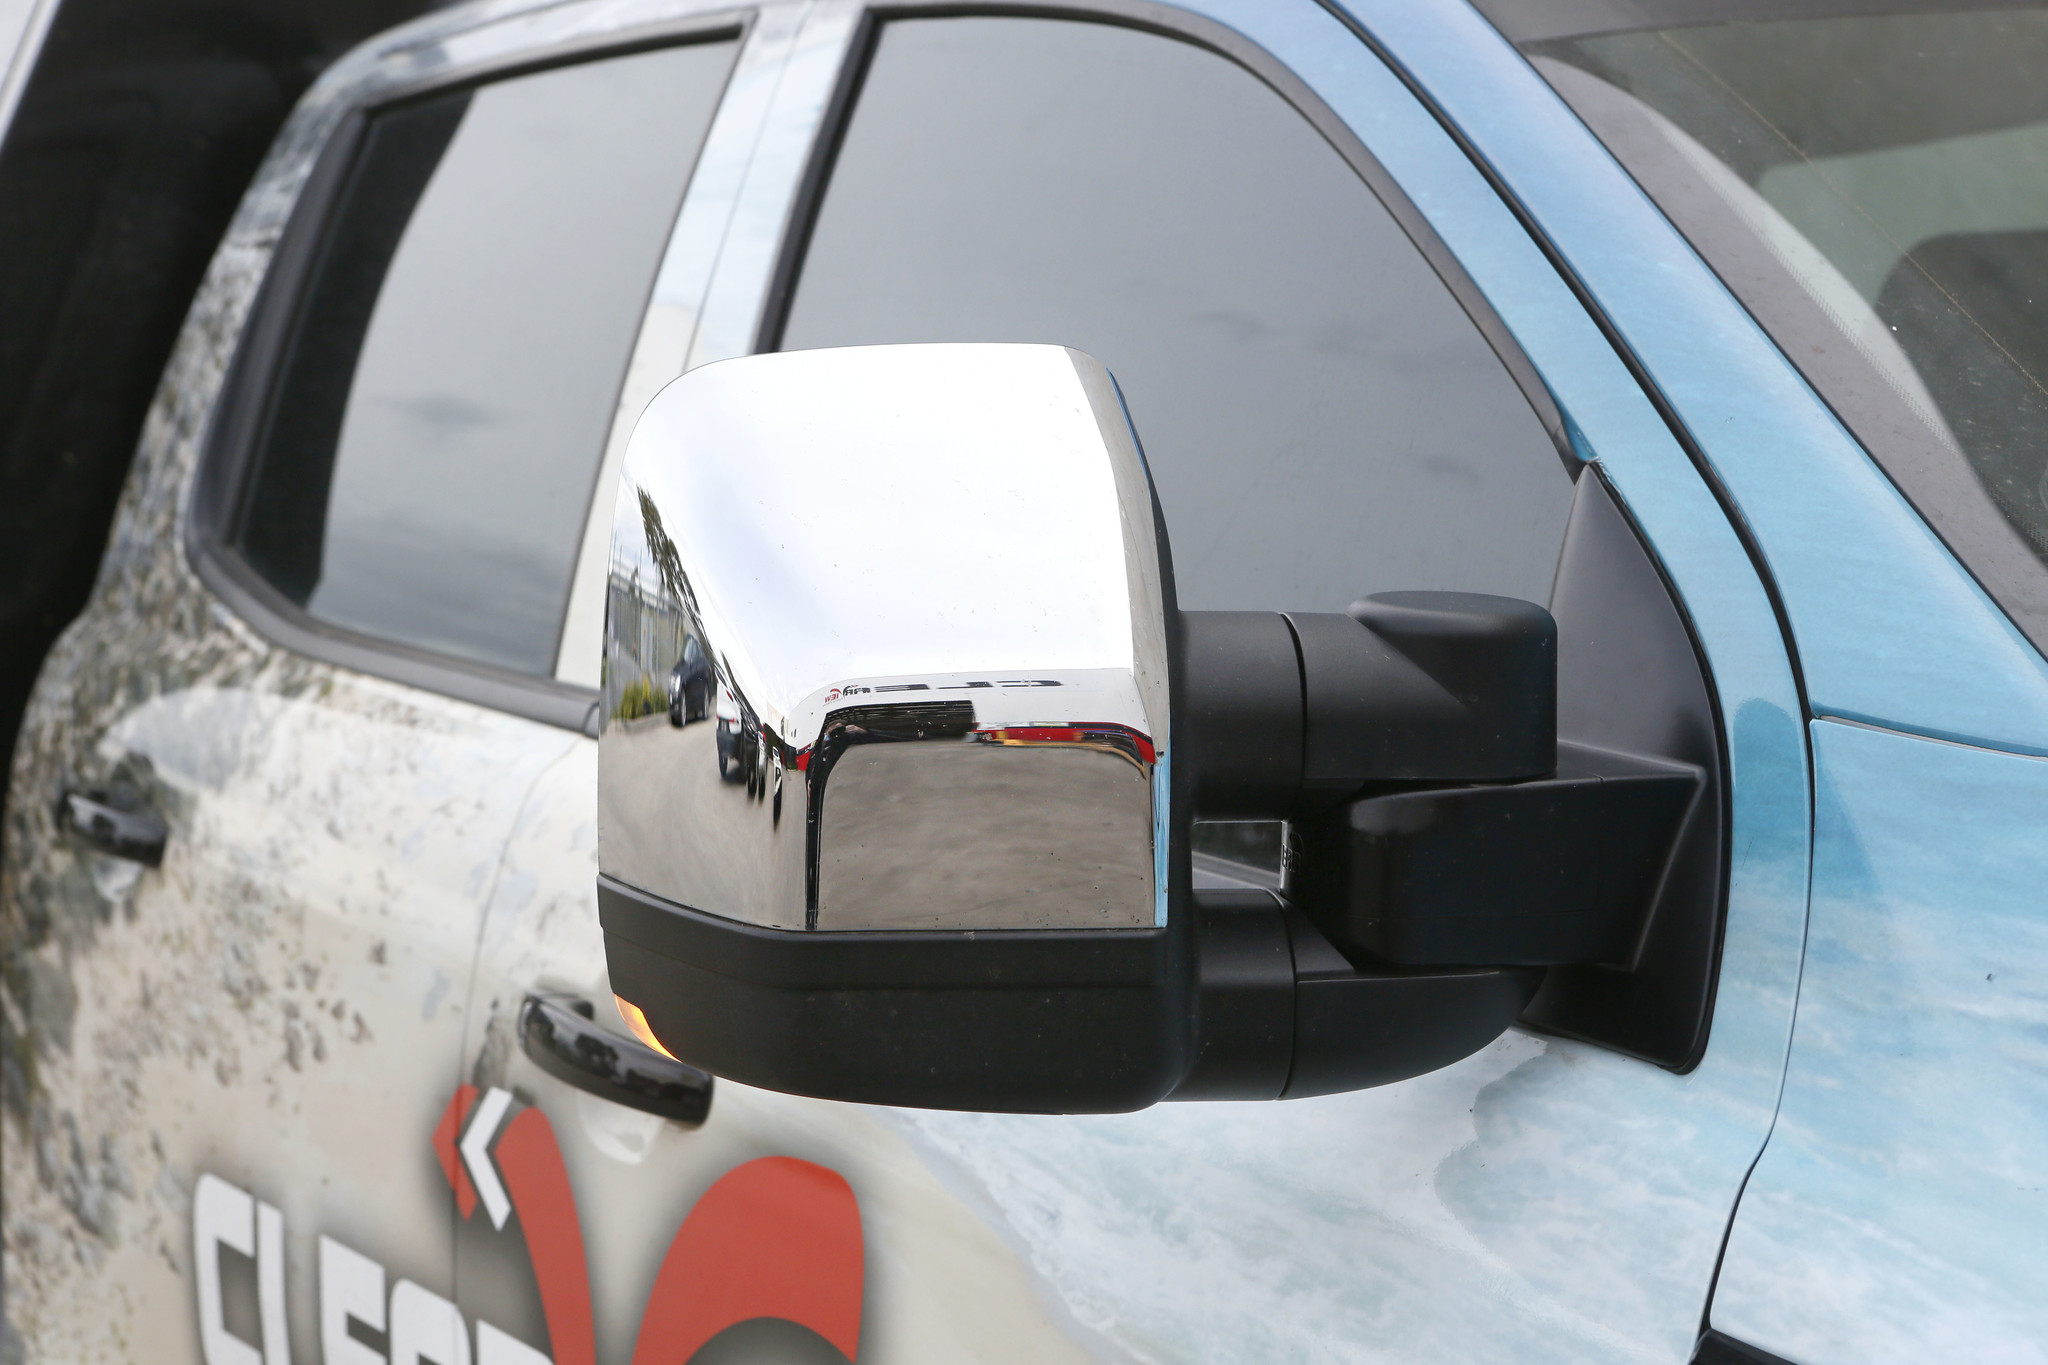 Toyota NEXT GENERATION: Clearview Towing Mirror Land Rover Discovery 3/4